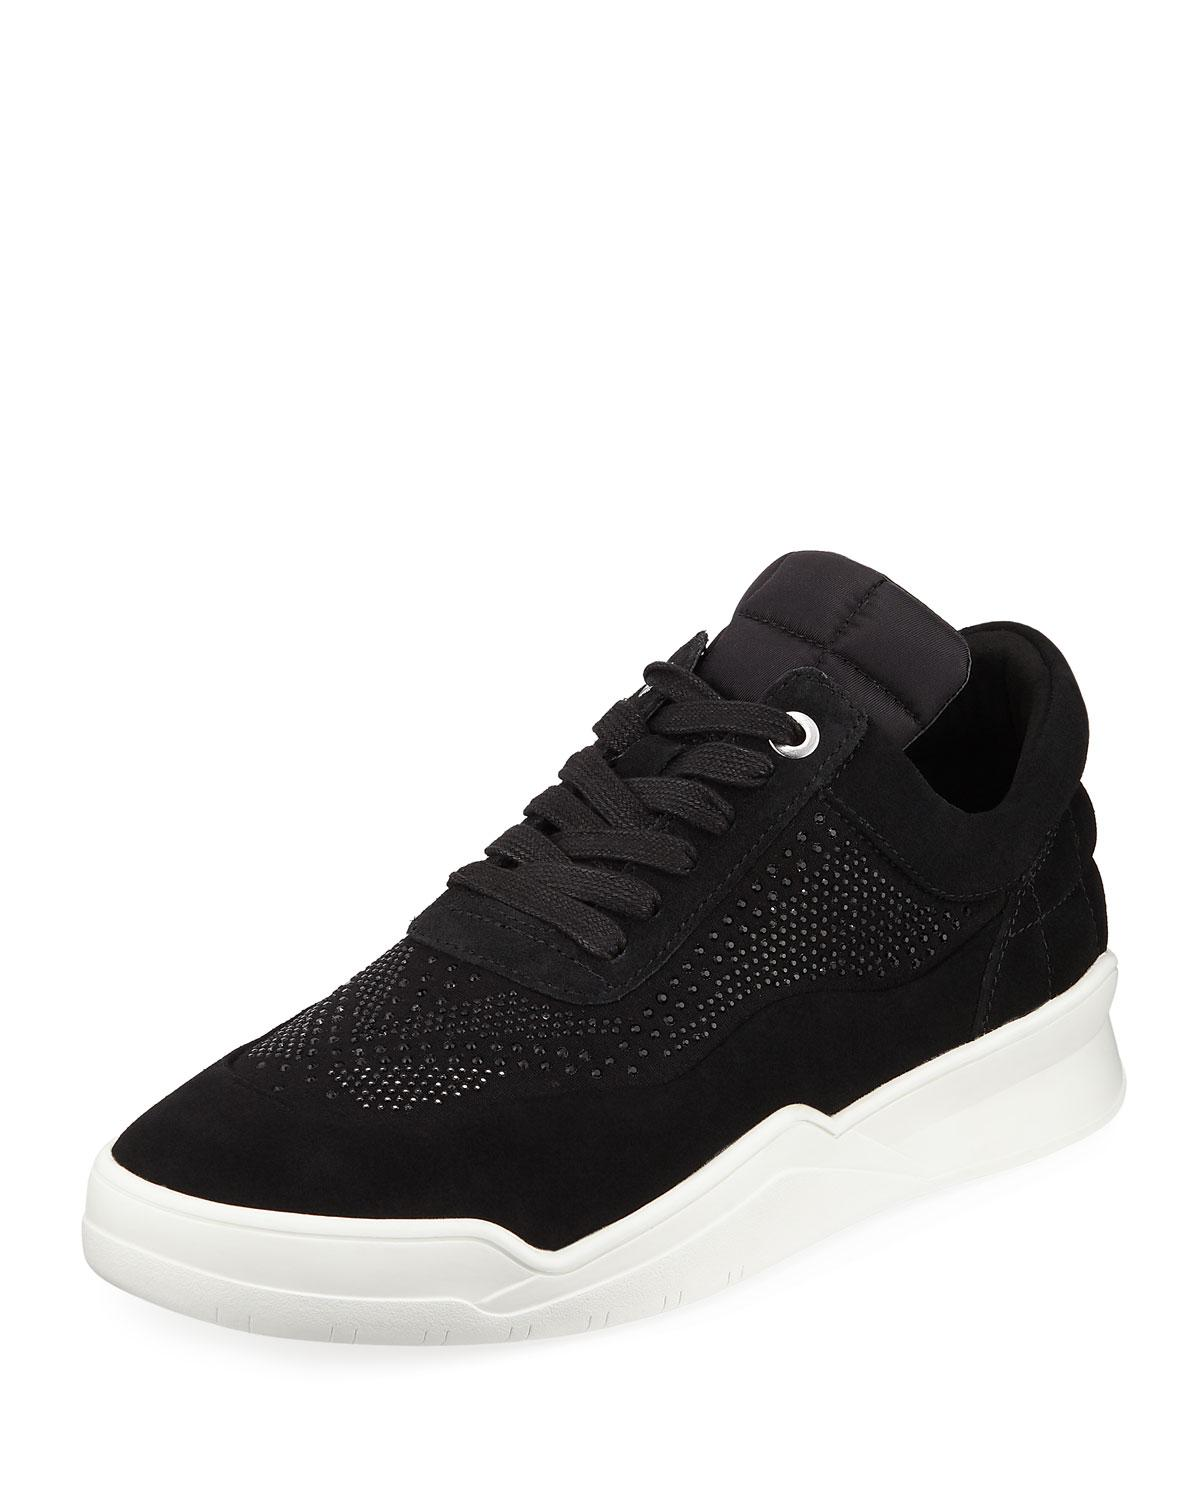 Karl Lagerfeld Men's Mid-Top Sneaker